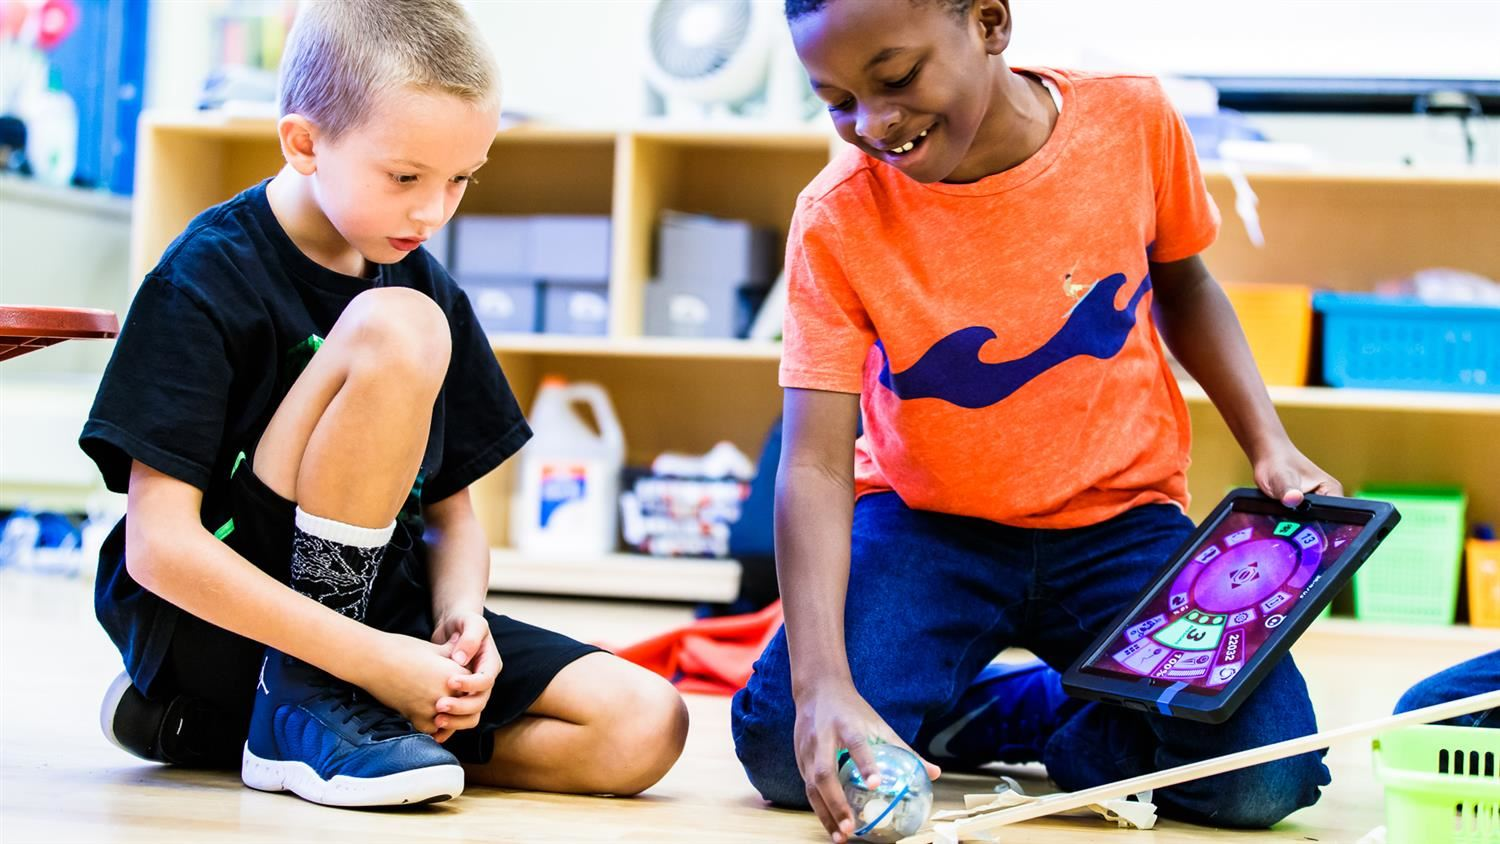 Bugg Elementary students work with a sphero robot.